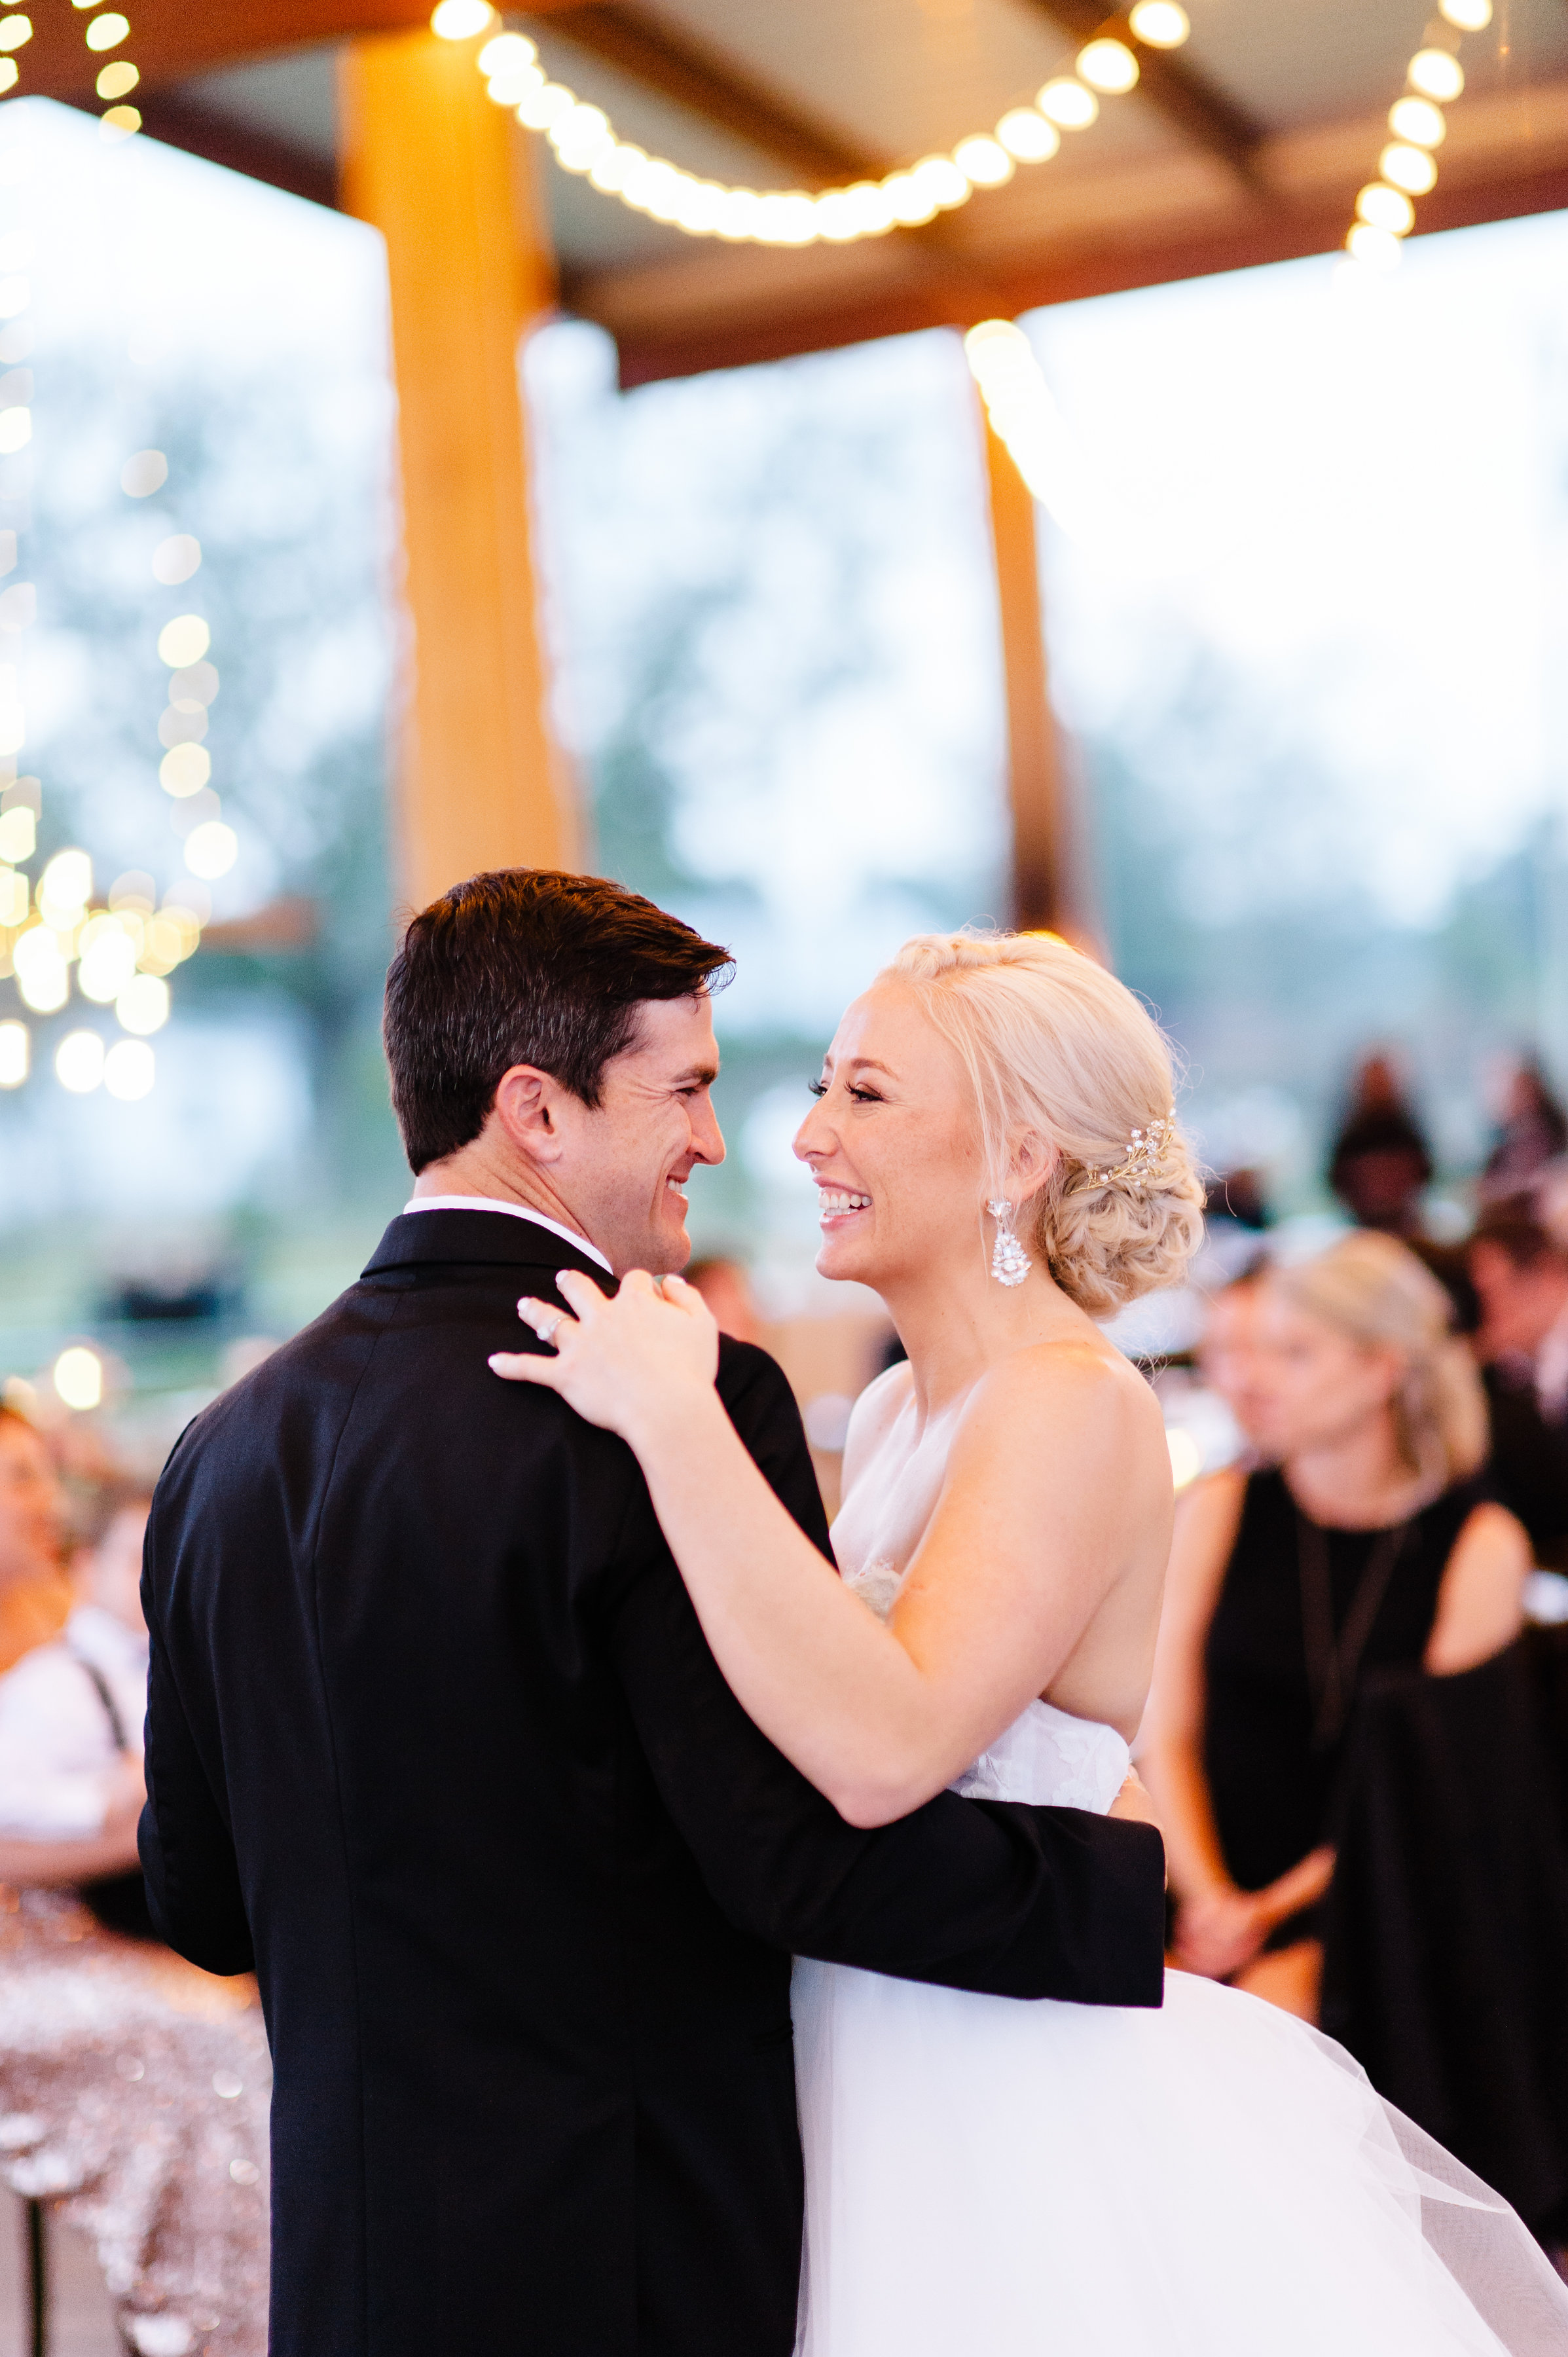 They share their first dance under romantic market lighting